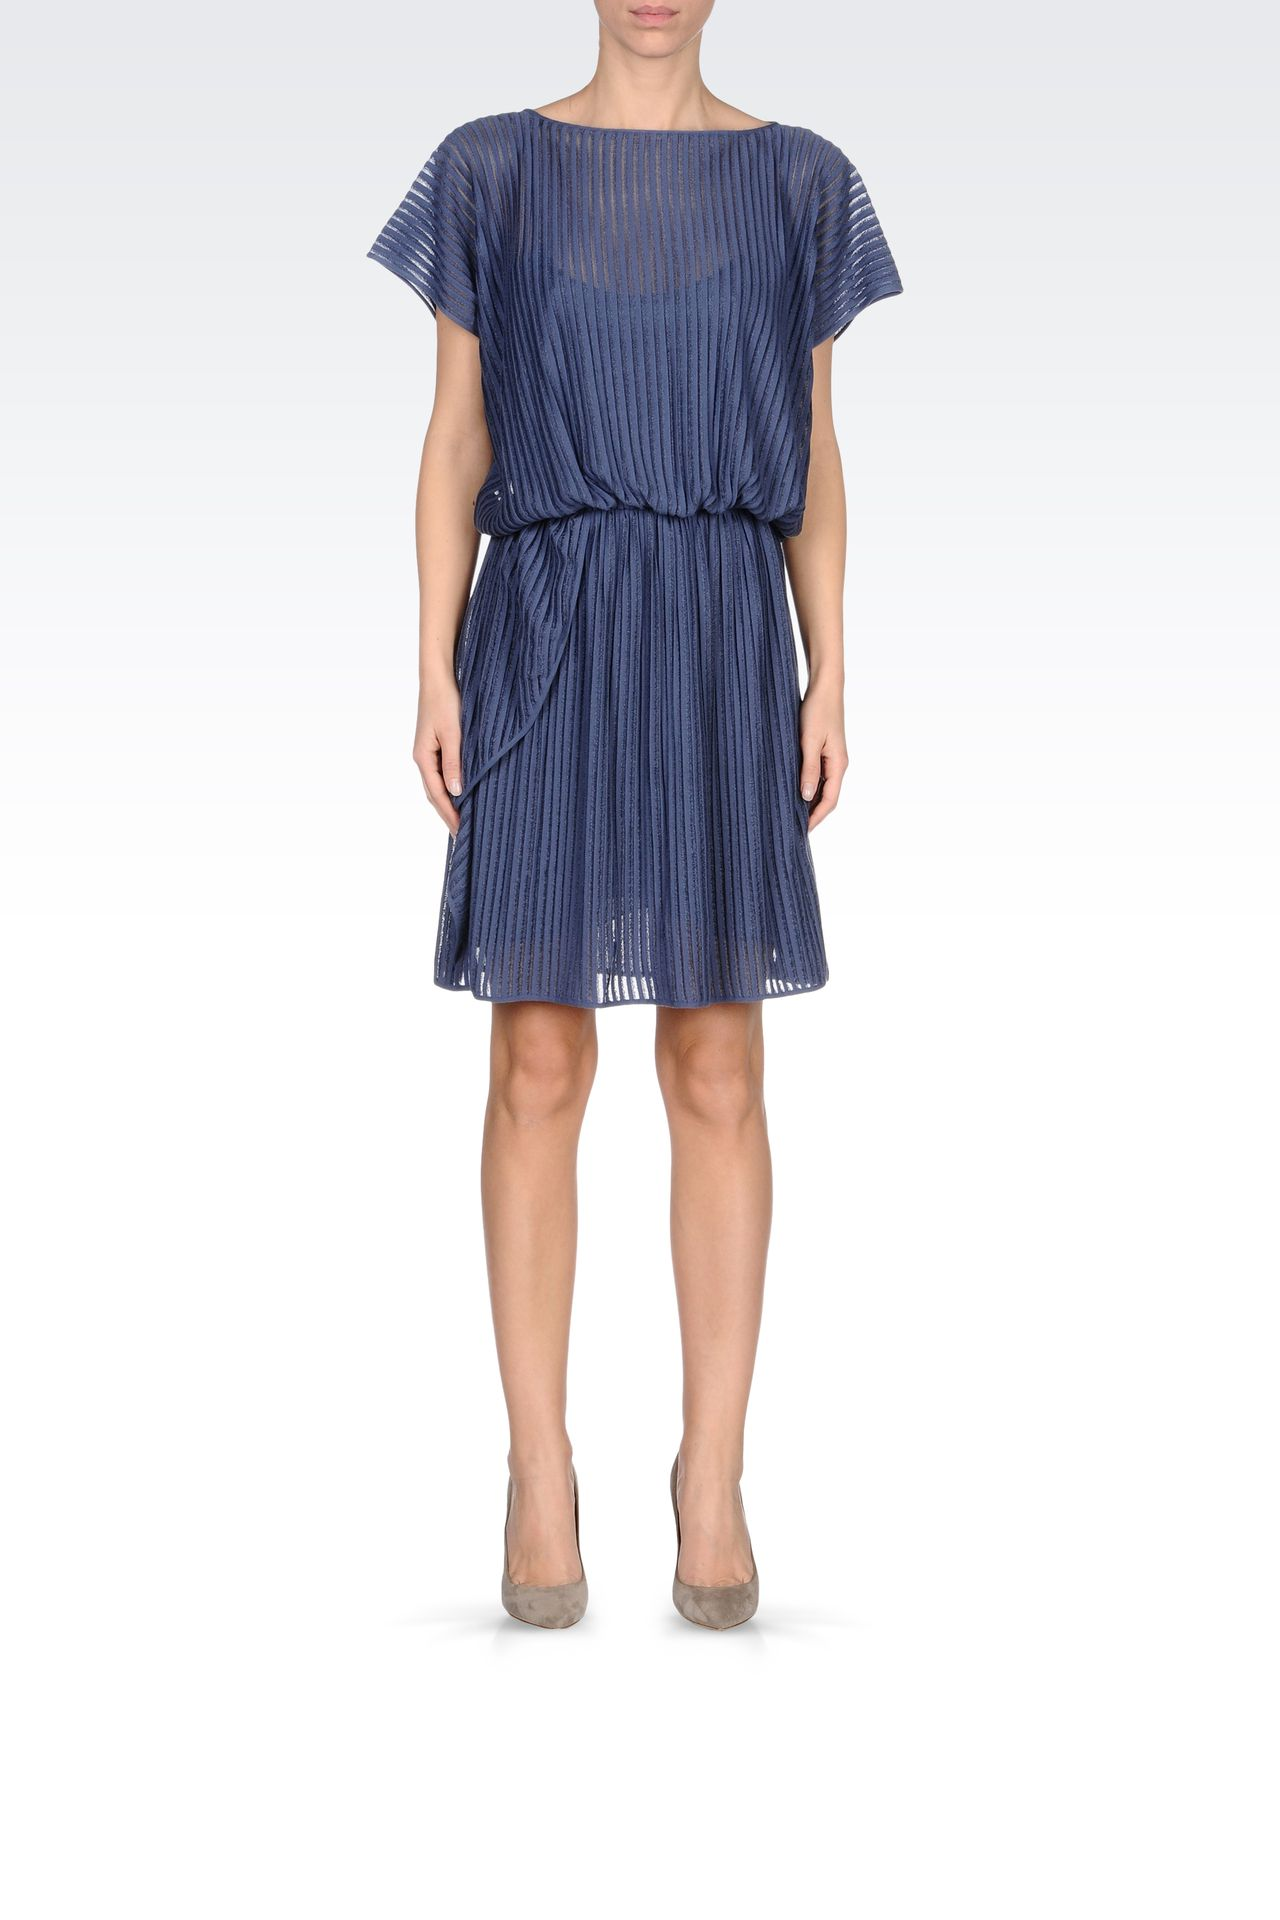 PLEATED DRESS IN VISCOSE MIX: Short Dresses Women by Armani - 0